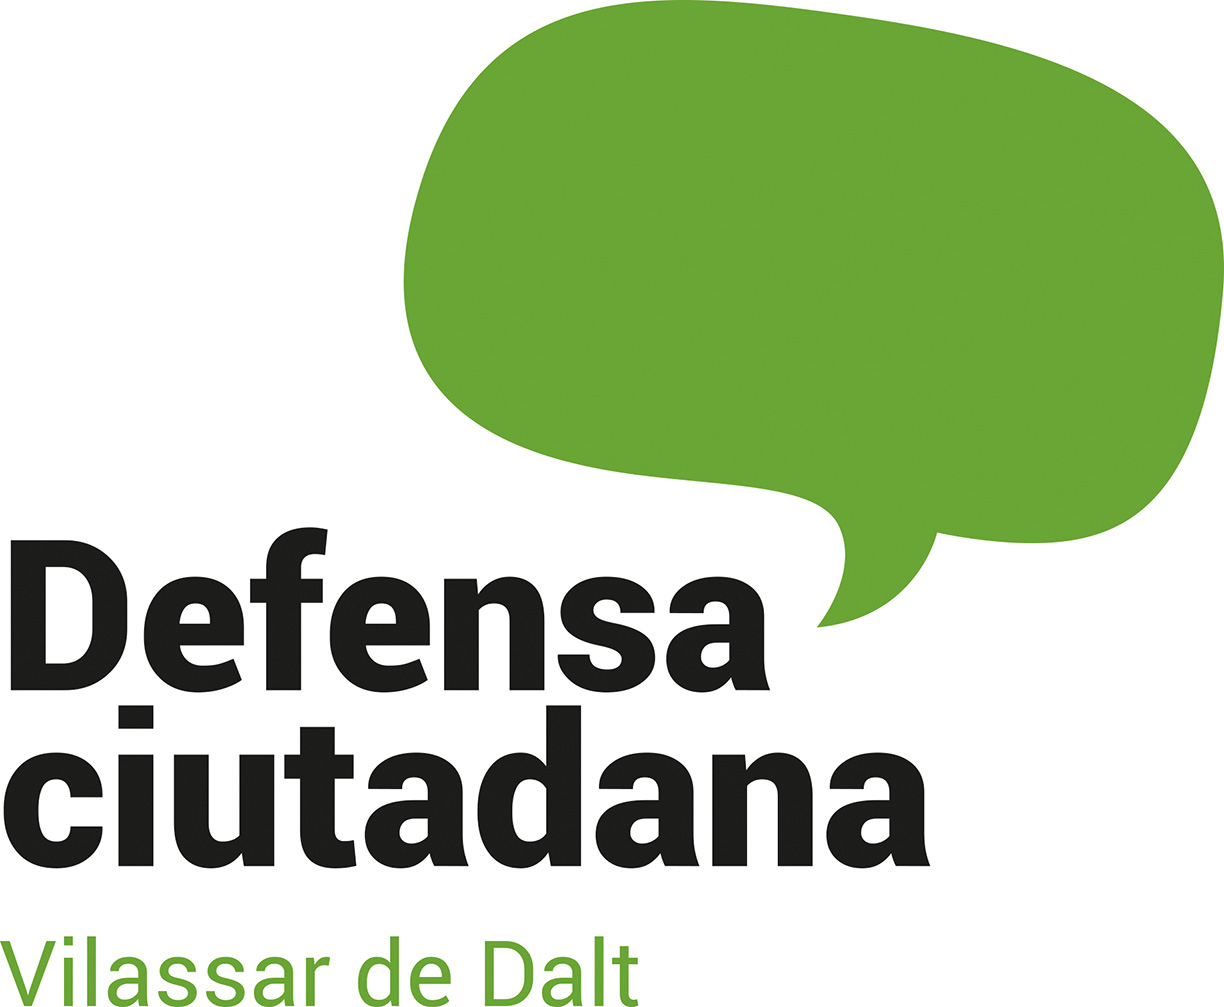 Defensa ciutadana